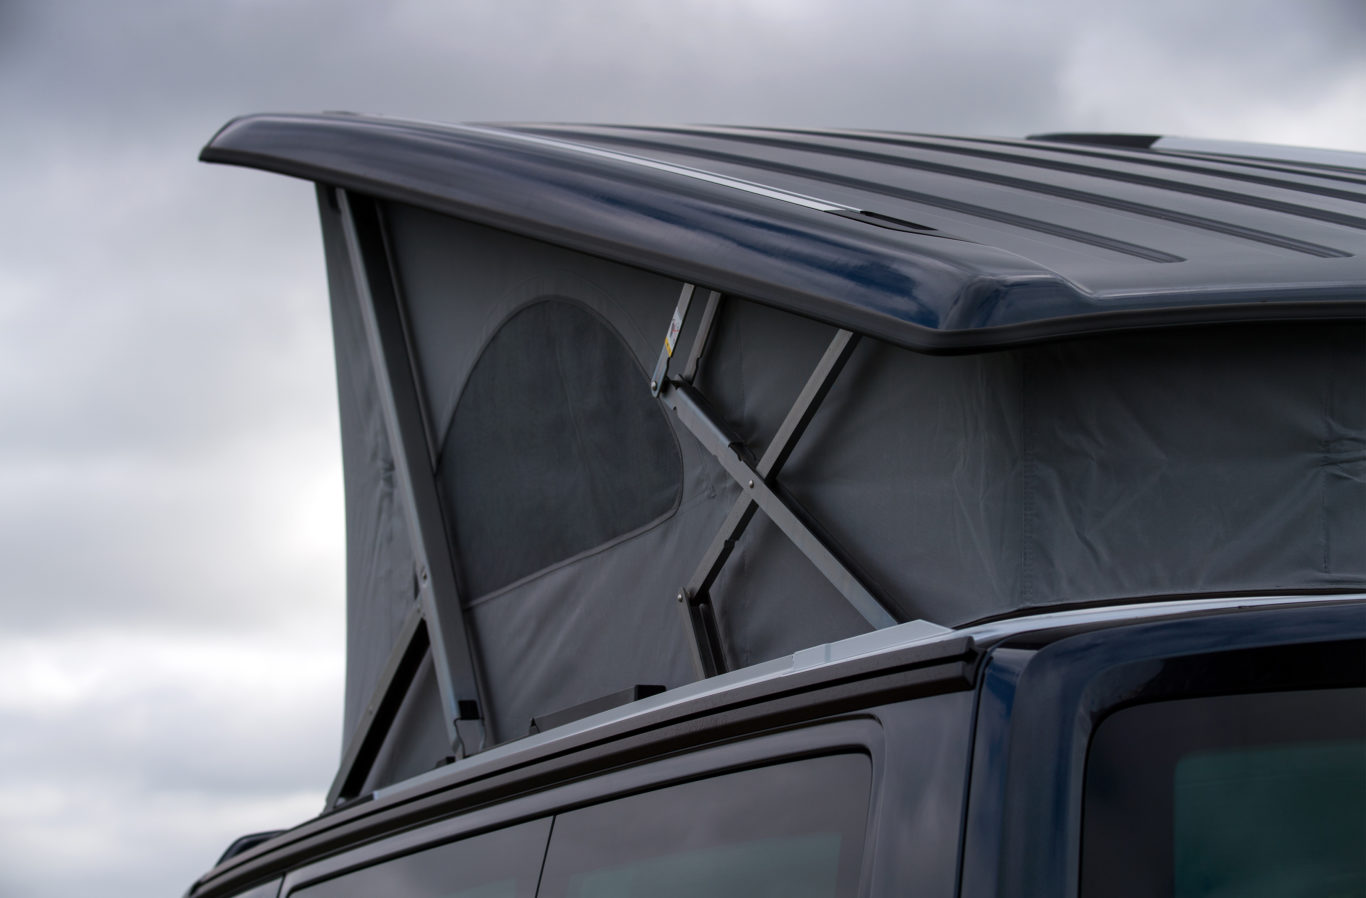 A pop-top roof gives better headroom and additional sleeping areas